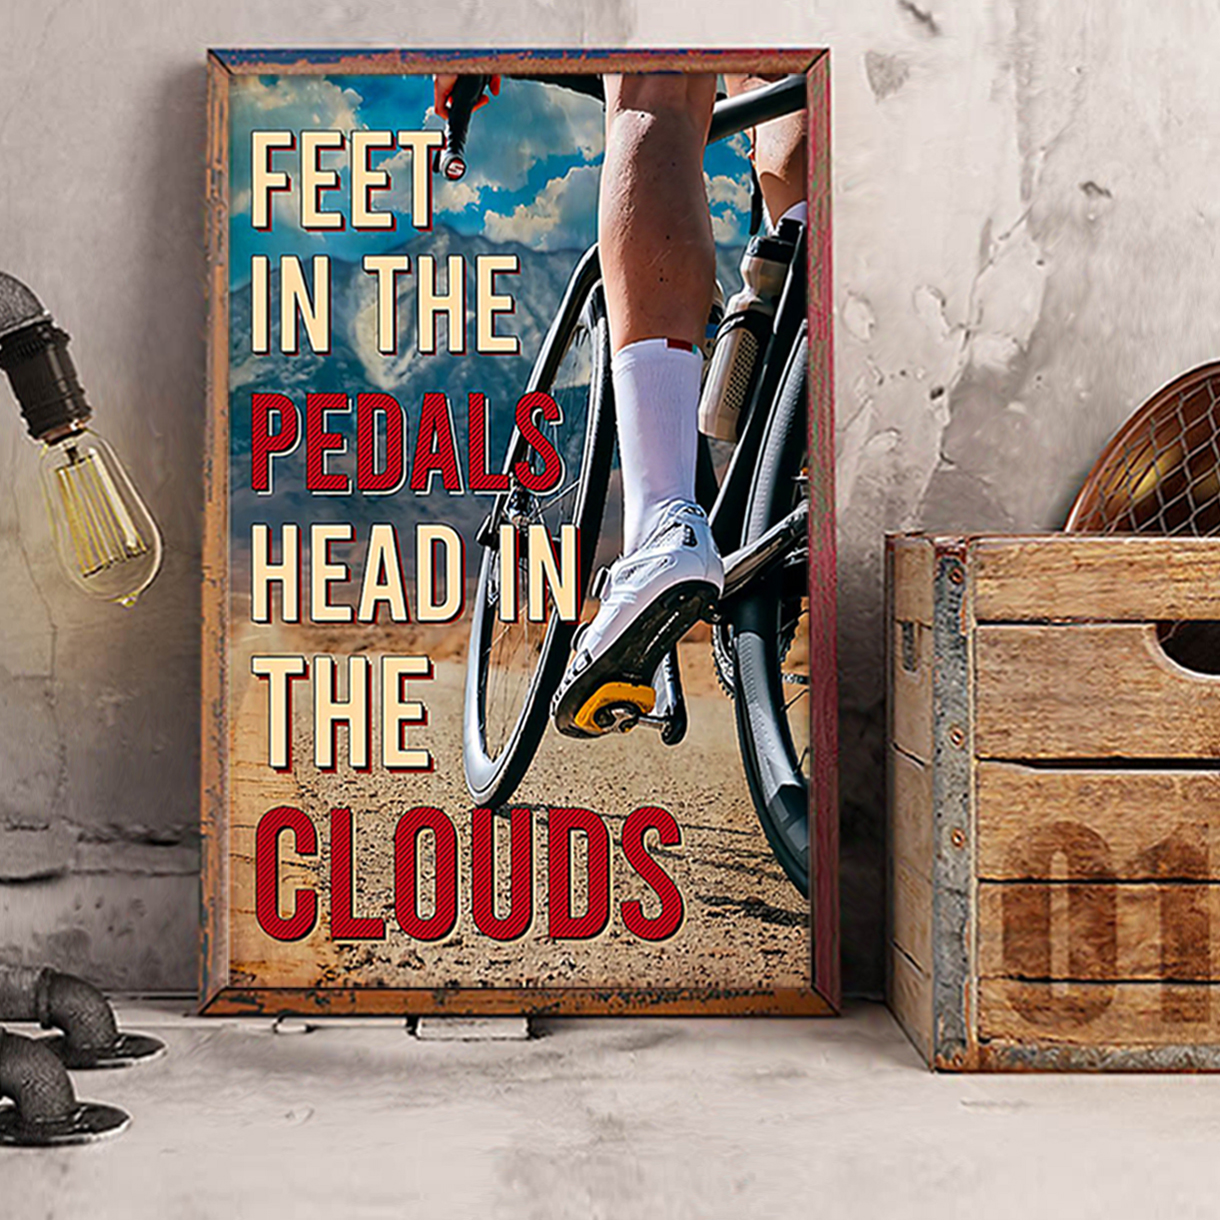 Cycling feet in the pedals head in the clouds poster A2